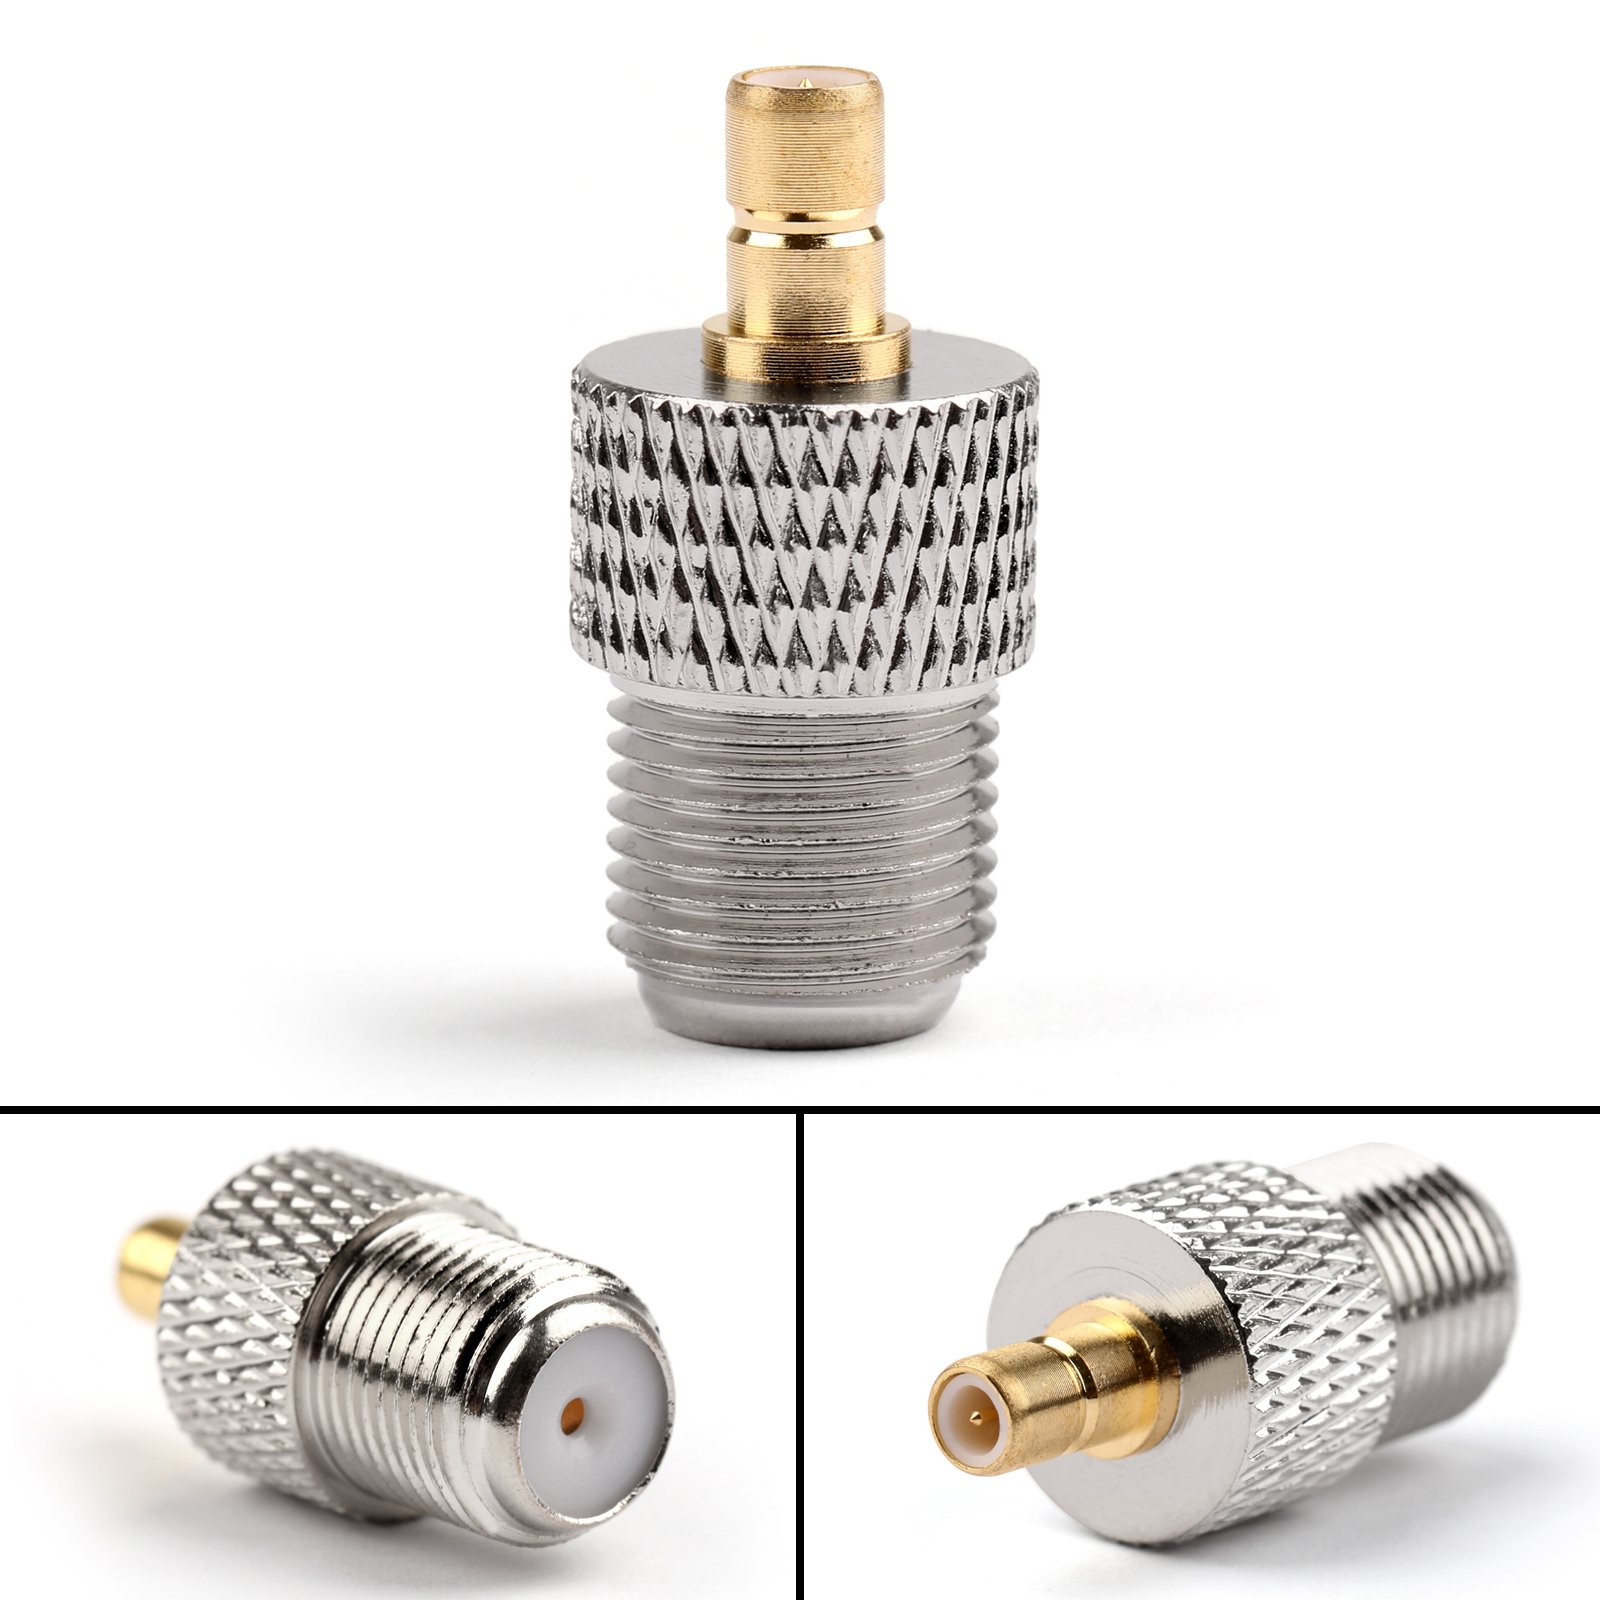 1Pc SMB Plug Male To F Jack Female Straight Coaxial Adapter Coupler ...